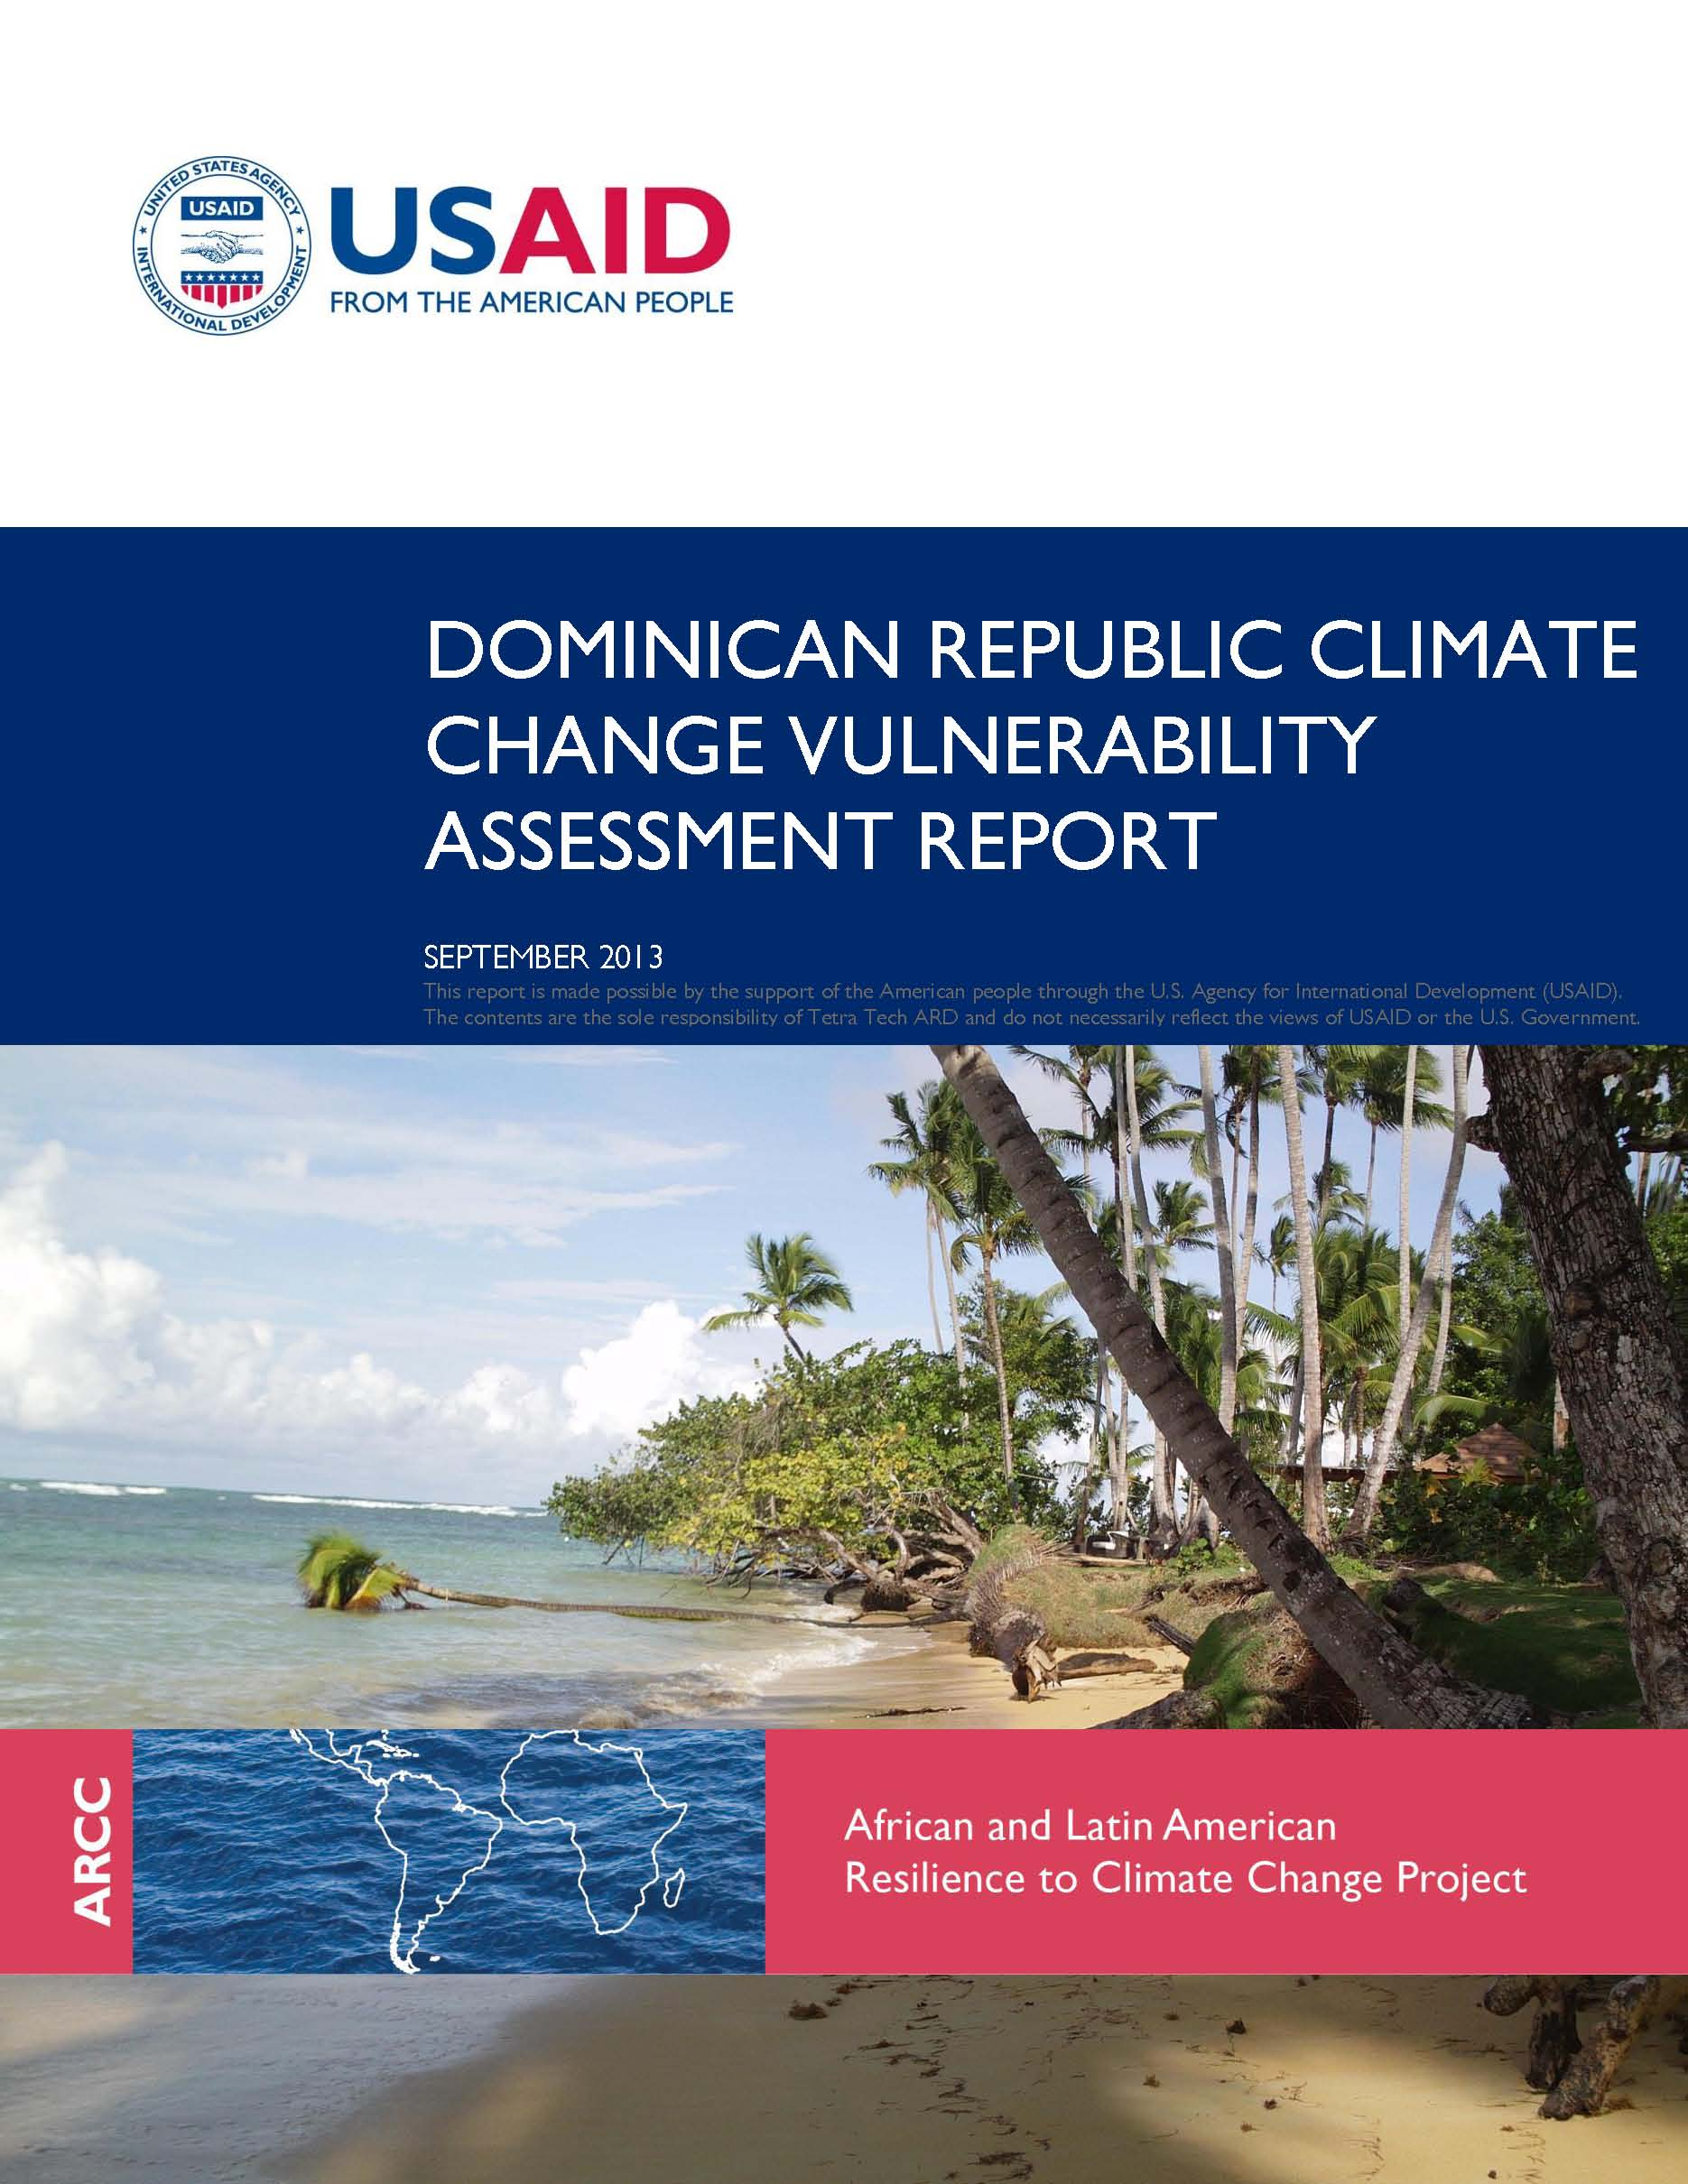 Assessment report of Dominican Republic's climate change vulnerability